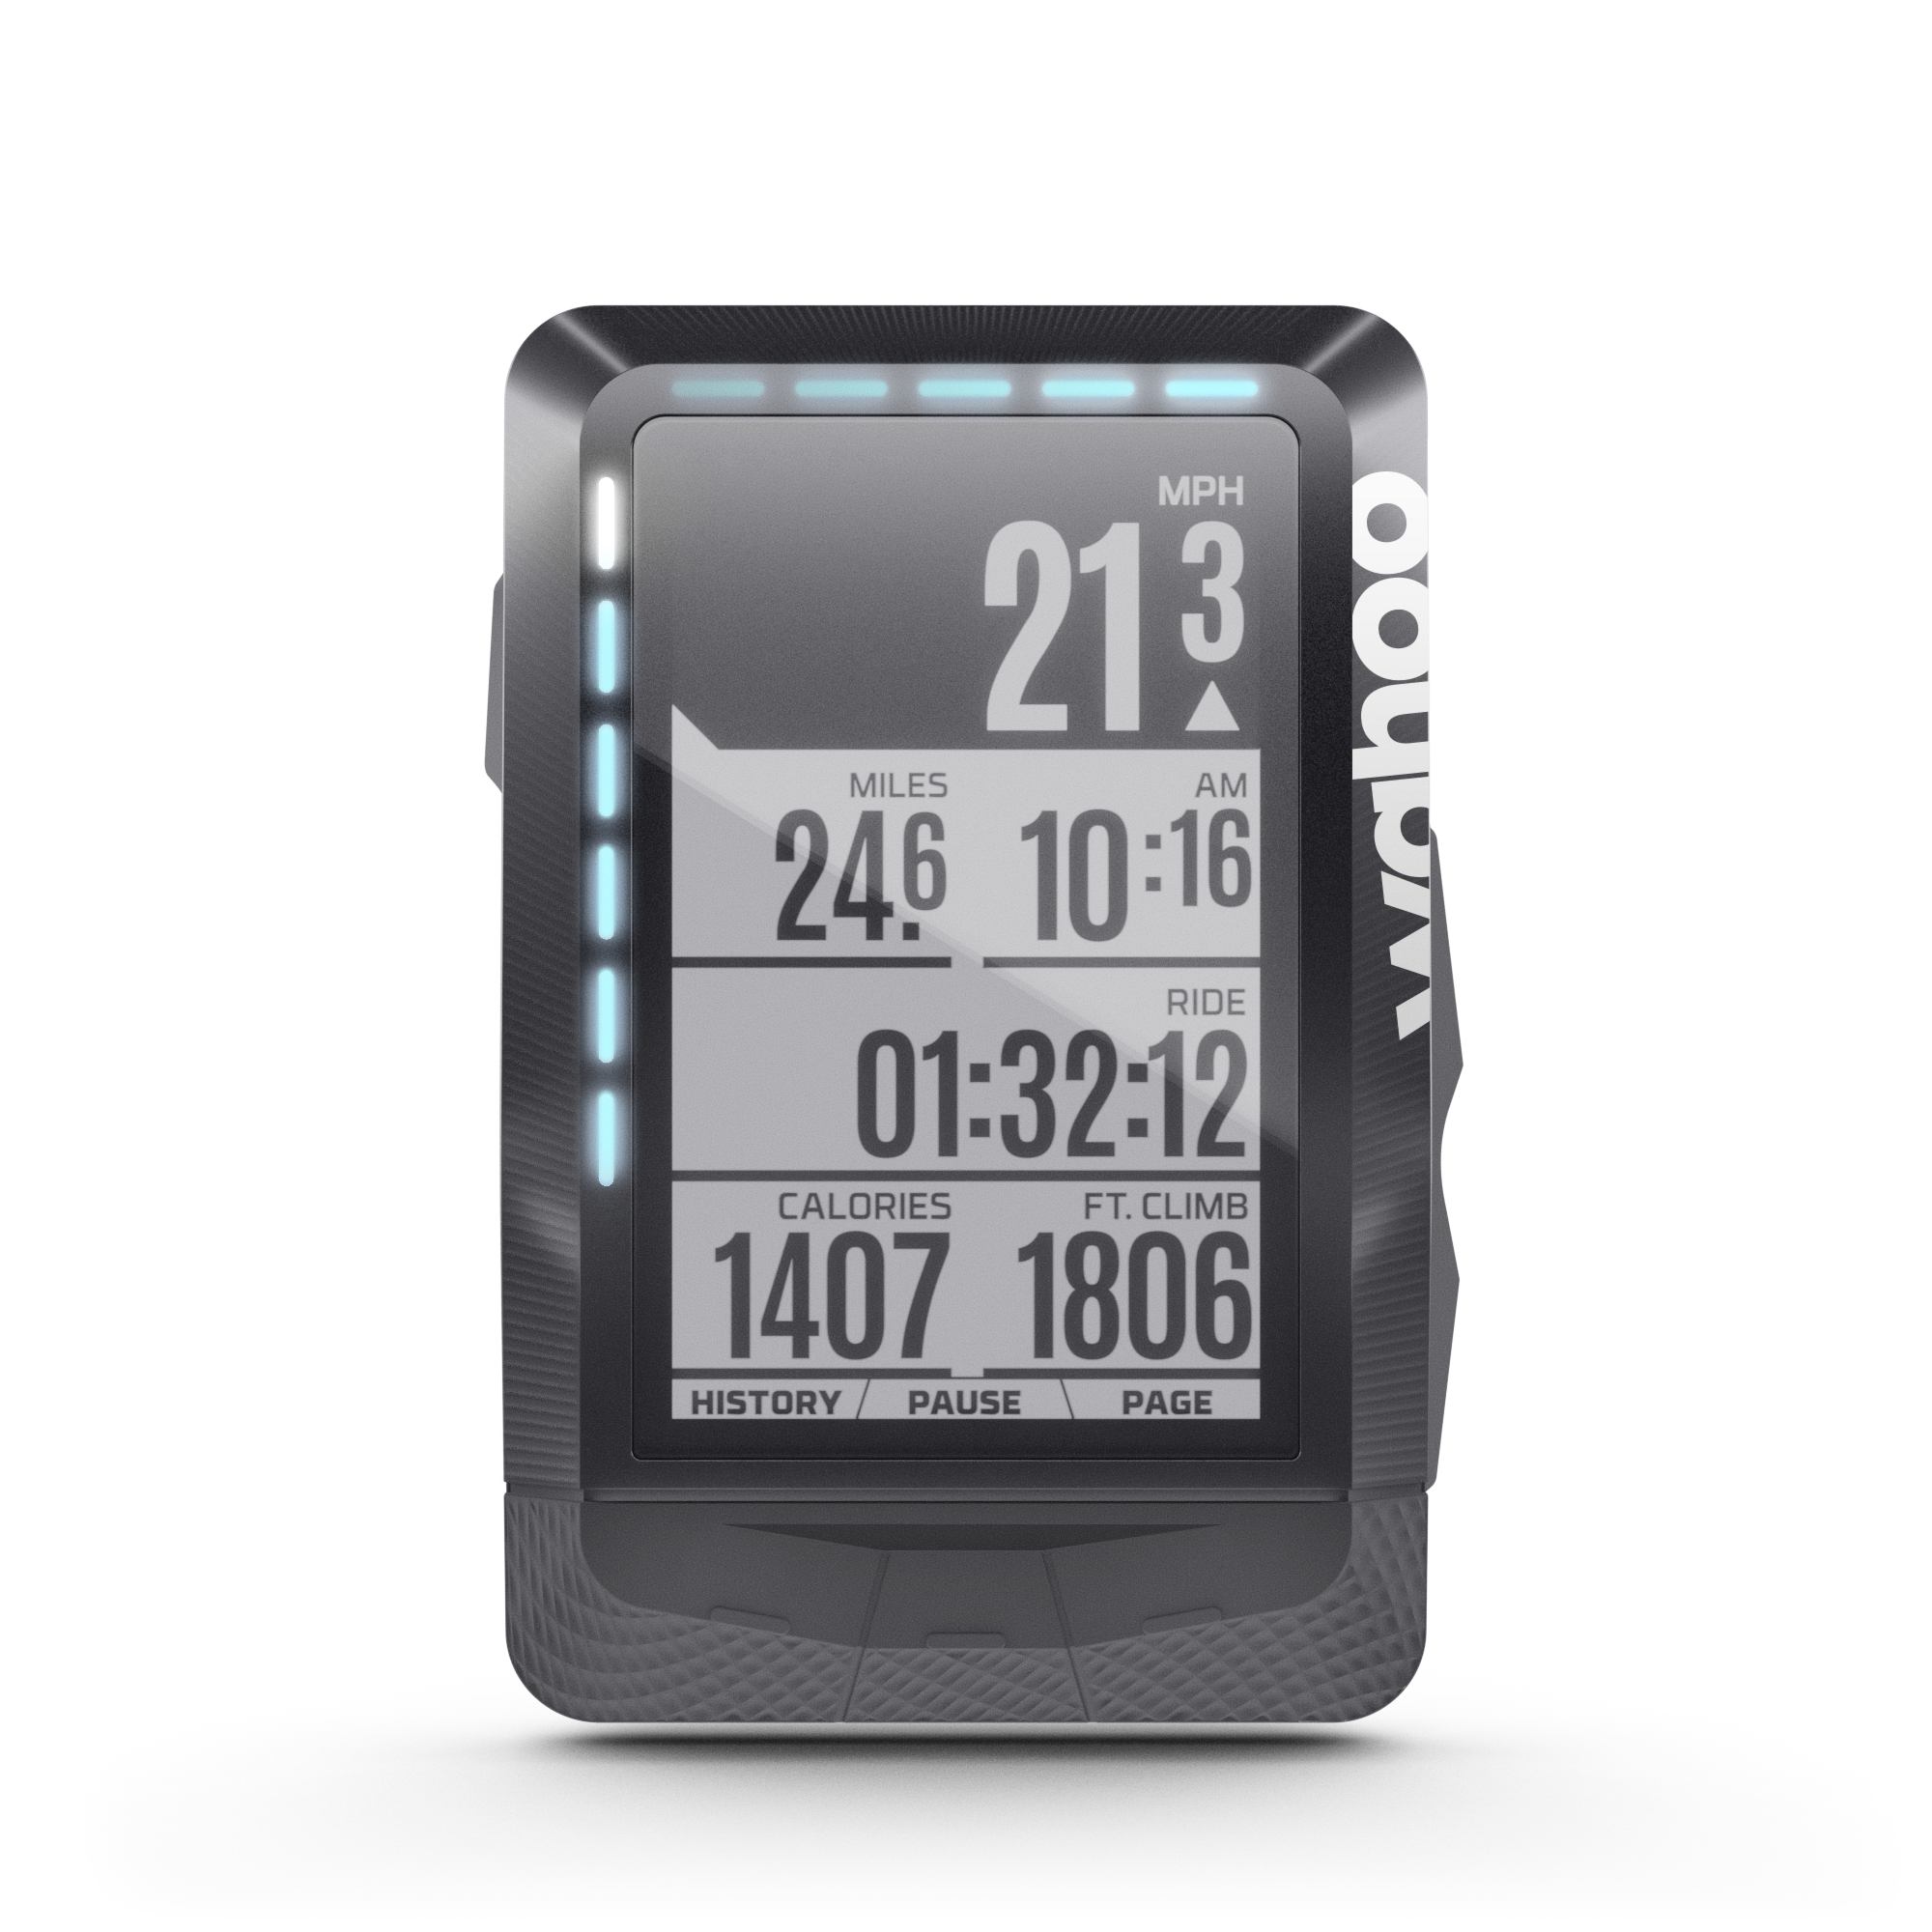 Wahoo Elemnt - Experience the game-changing power and simplicity of ELEMNT - the 100% wireless GPS bike computer that takes the complexity out of using and operating a bike computer while providing all the functionality you need out of any comparative GPS head unit.